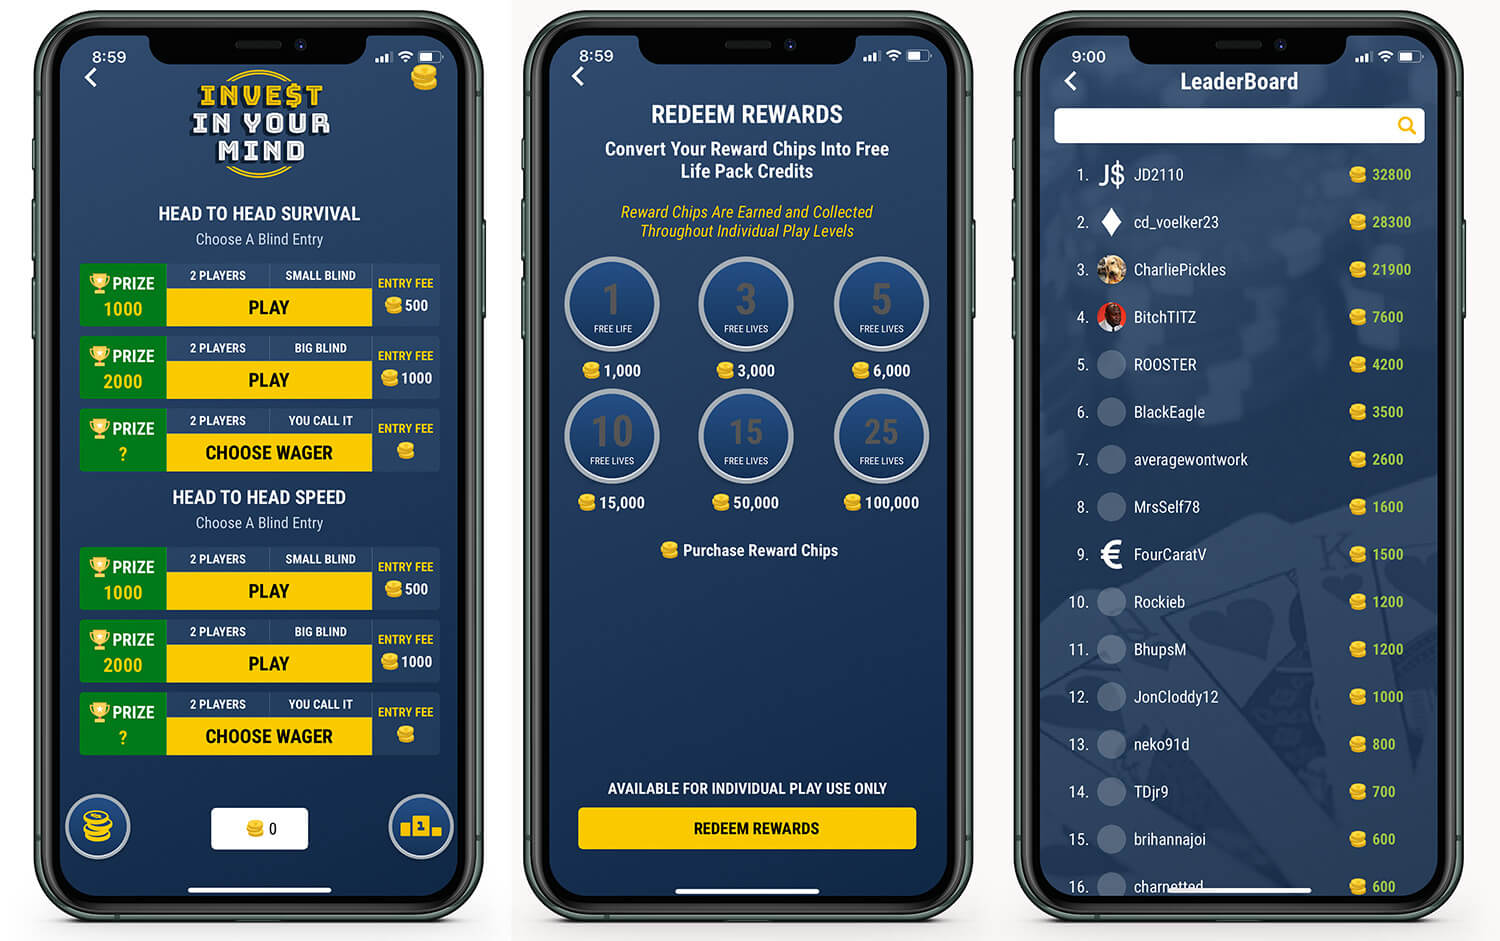 Top Leaderboard in MoneyBall Mind Training Game